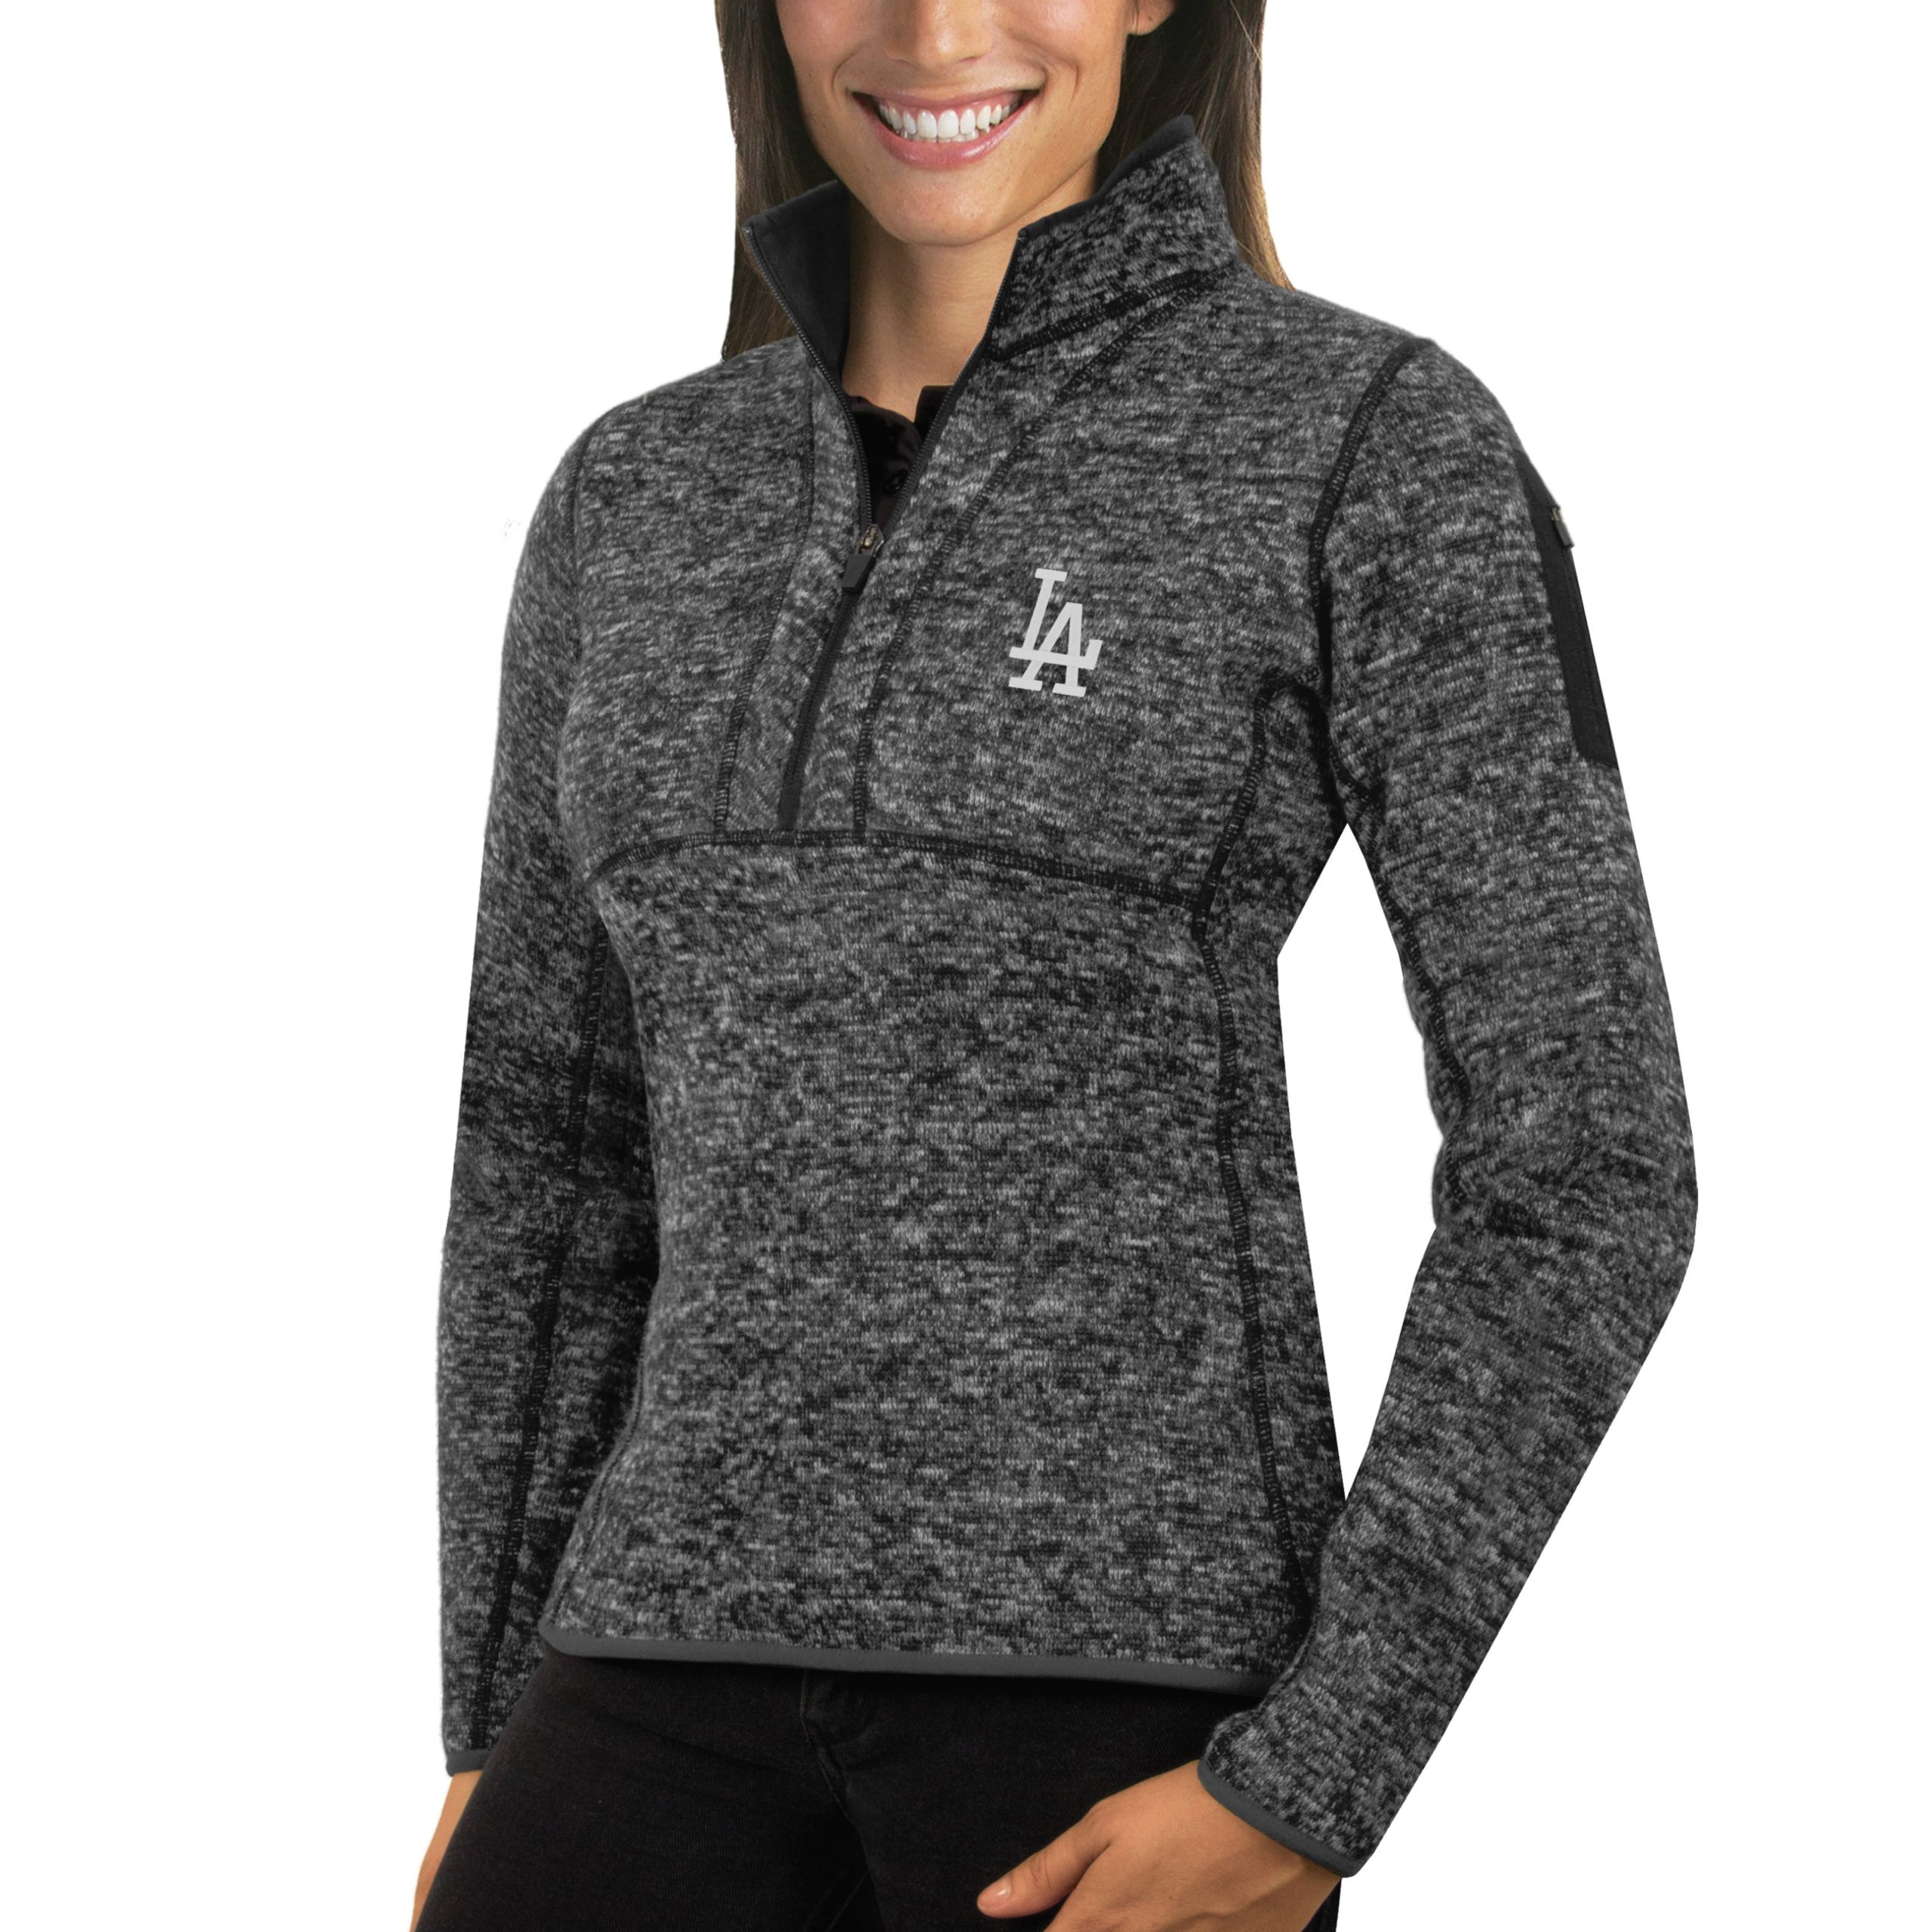 Los Angeles Dodgers Antigua Women's Fortune Half-Zip Pullover Sweater - Heathered Charcoal